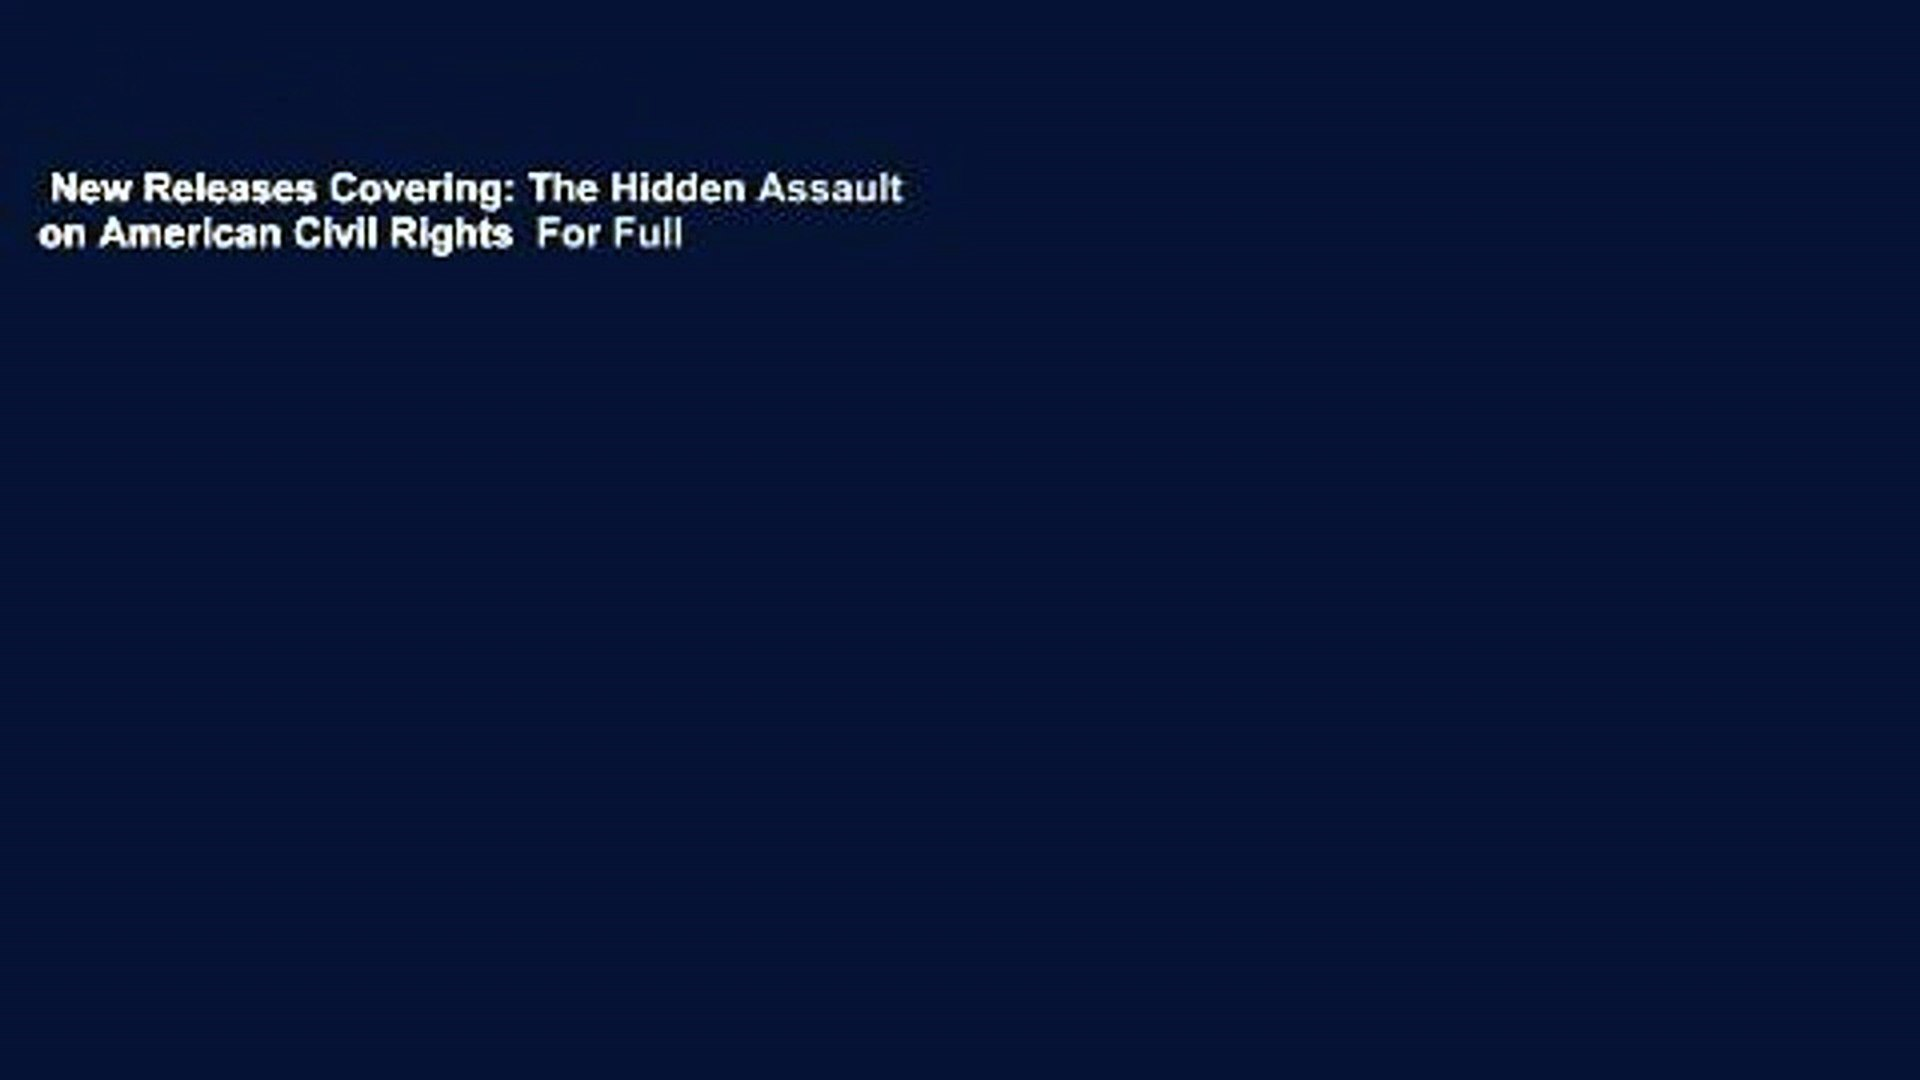 New Releases Covering: The Hidden Assault on American Civil Rights  For Full